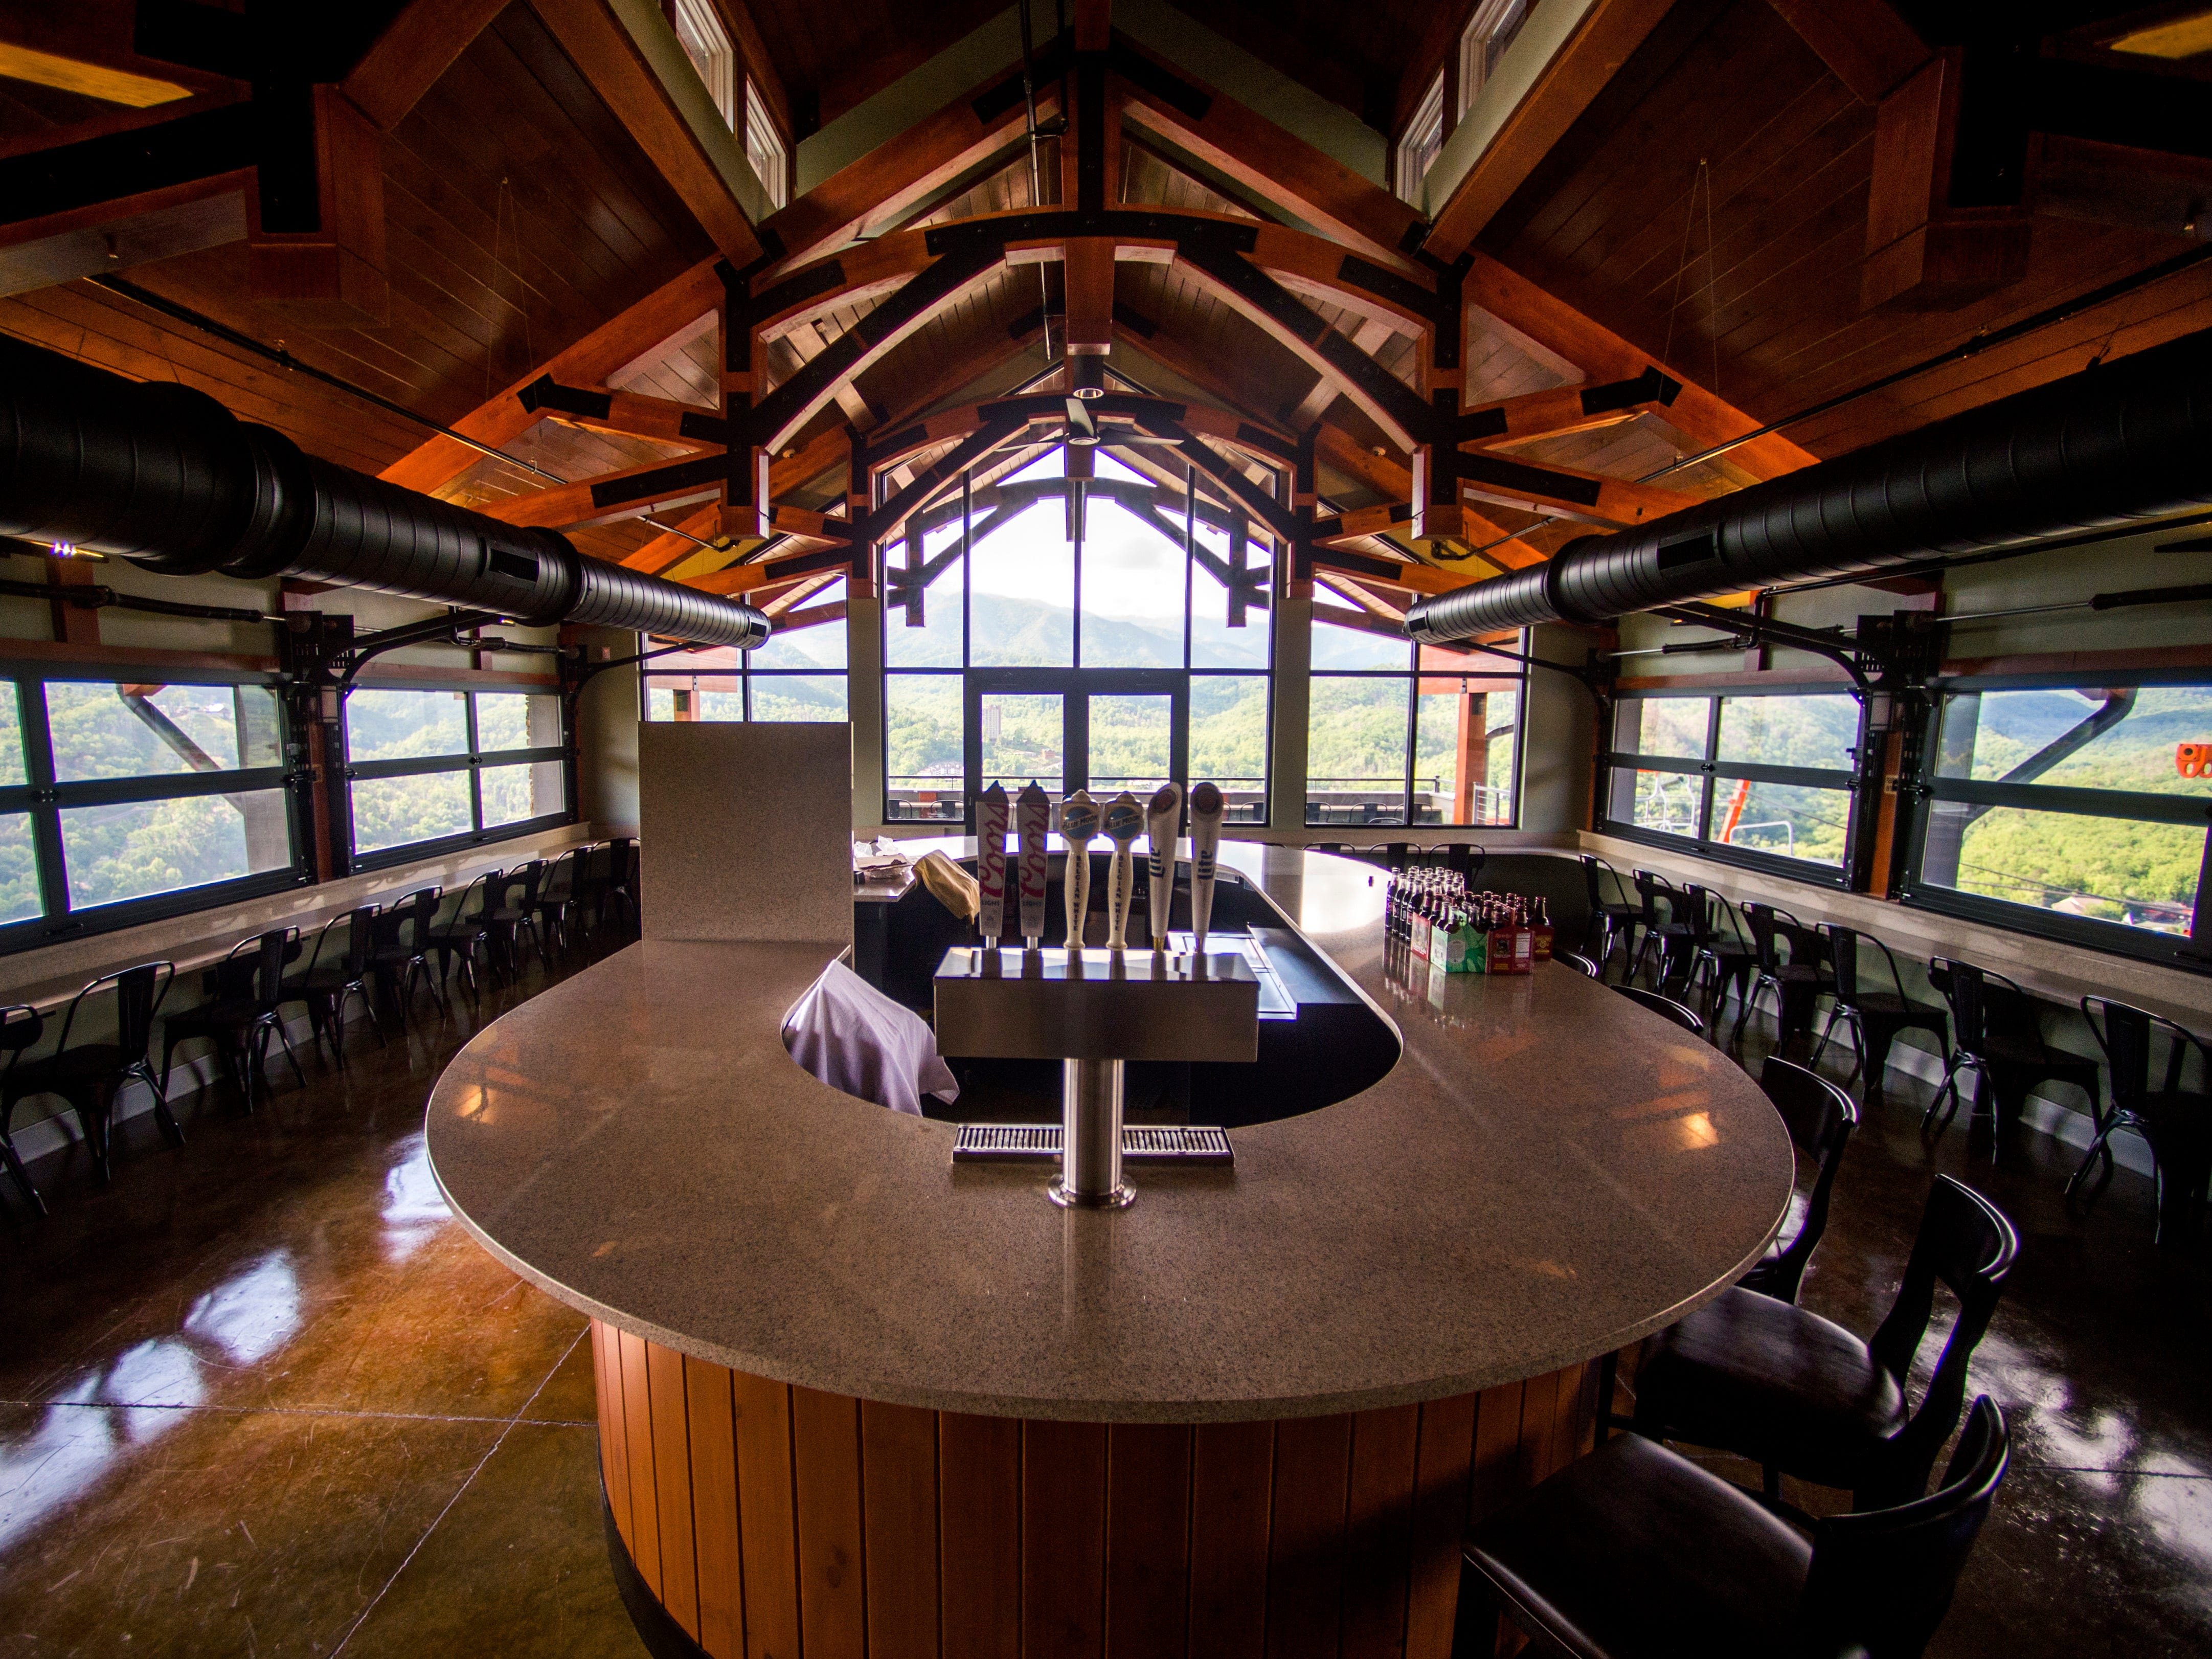 A bar area in the SkyDeck portion of the Gatlinburg SkyLift Park offers panoramic views of Gatlinburg and the Smoky Mountains.